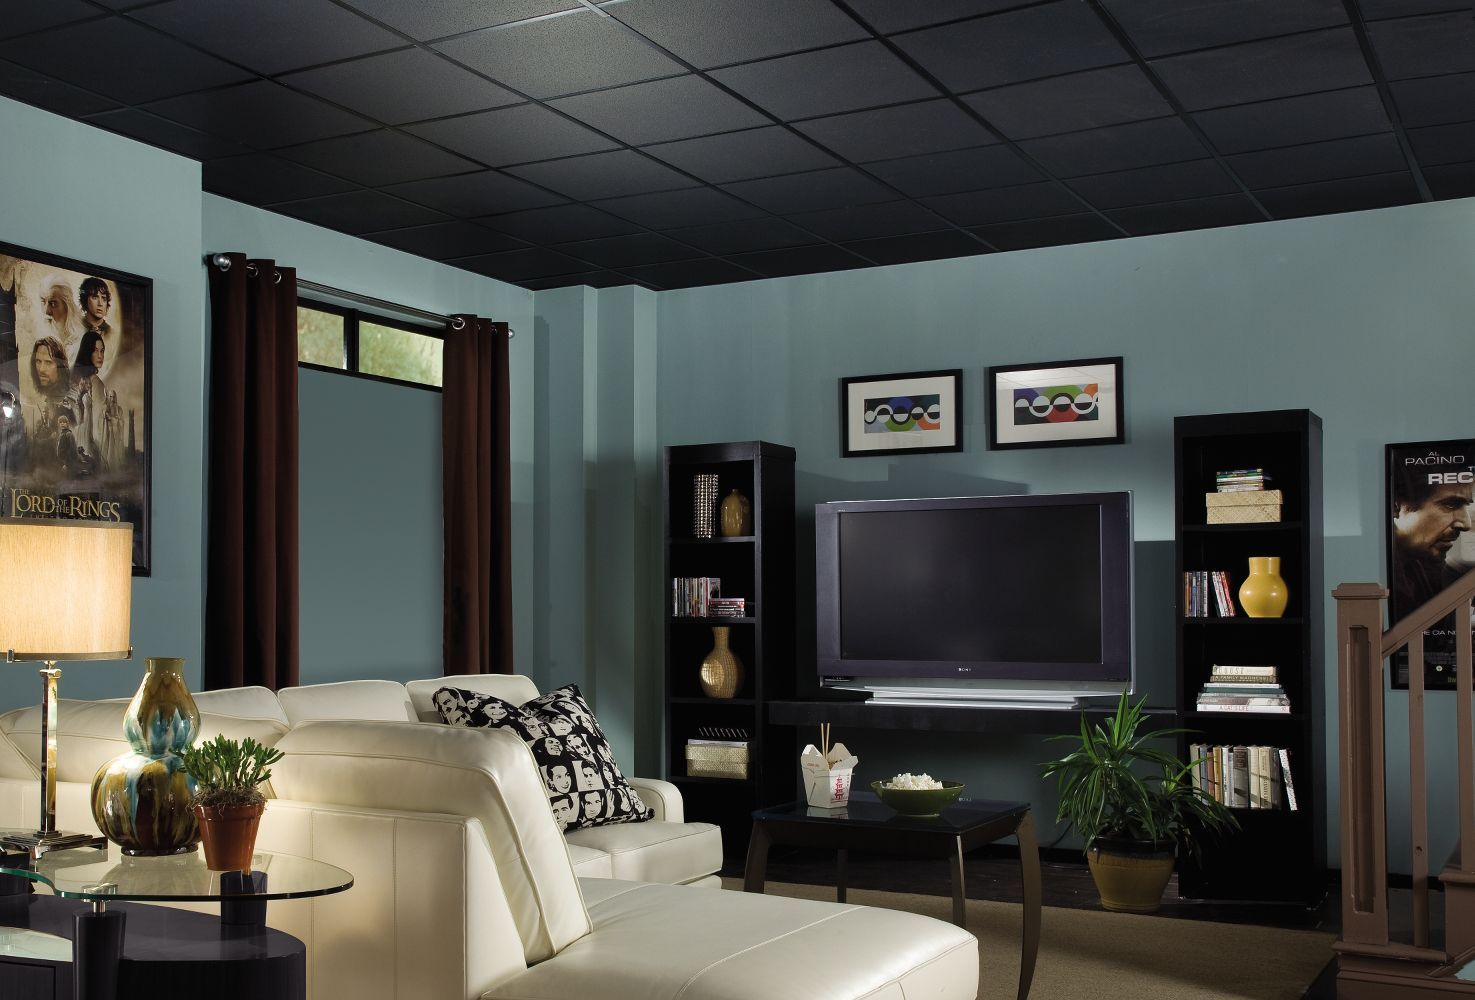 Fine fissured homestyle ceilings textured black 2 x 2 panel 1728 fine fissured homestyle ceilings textured black 2 x 2 panel 1728 by armstrong dailygadgetfo Choice Image